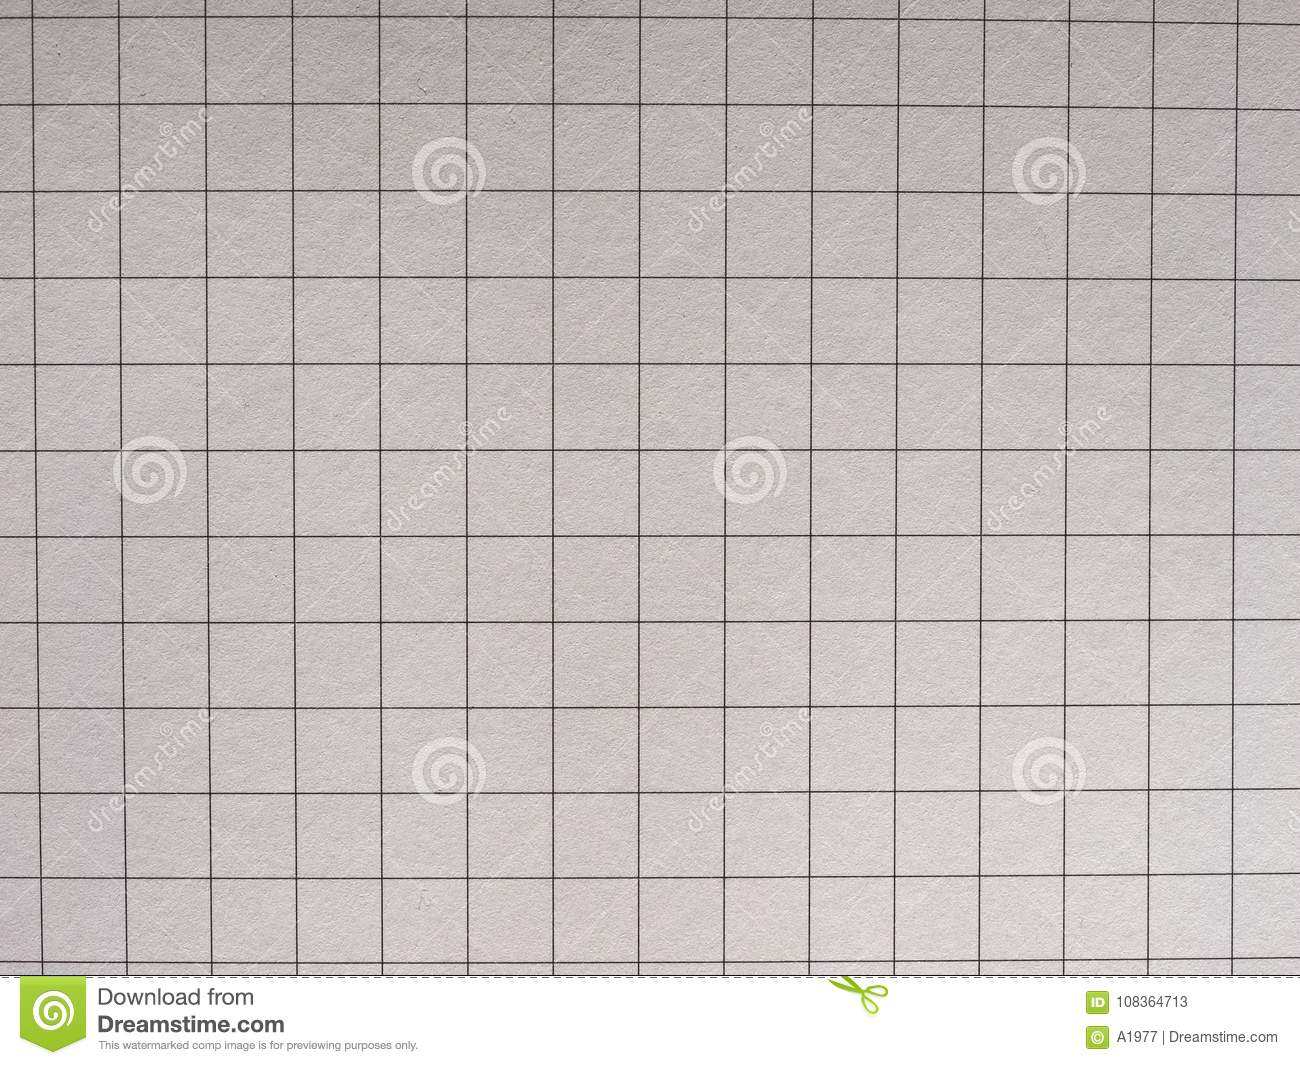 checkered paper texture background stock image image of geometry pattern 108364713 https www dreamstime com checkered paper texture background geometry maths notebook useful as image108364713